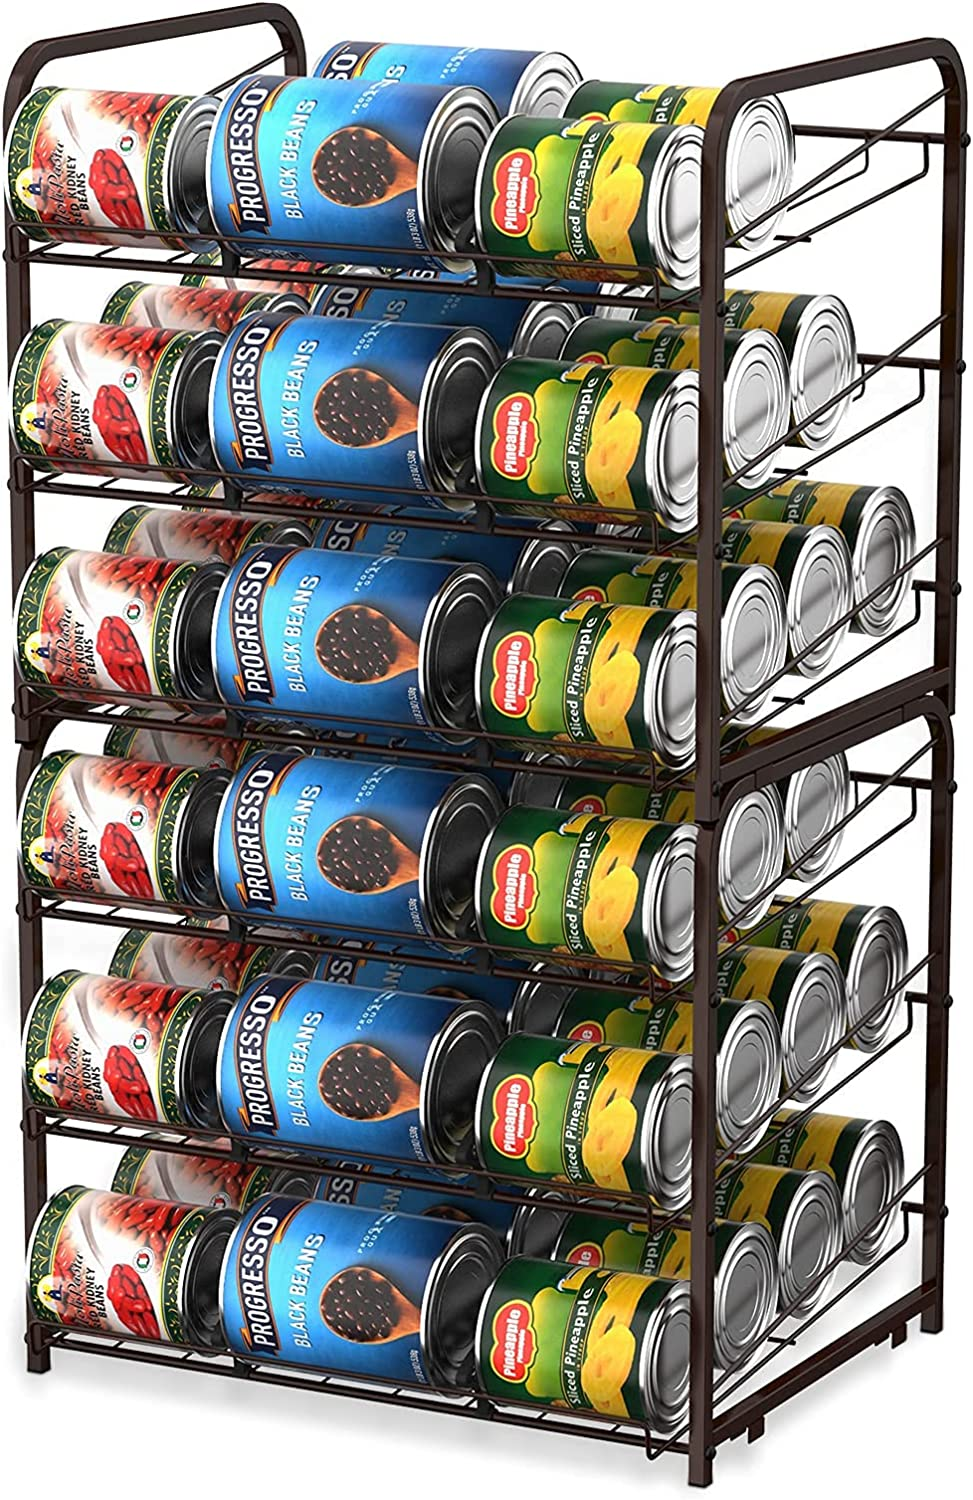 MOOACE 2 Pack Stackable Can Rack Organizer, Storage for 72 Cans, 3 Tier Can Storage Dispenser Rack Holder for Kitchen Cabinet Pantry Countertop, Bronze